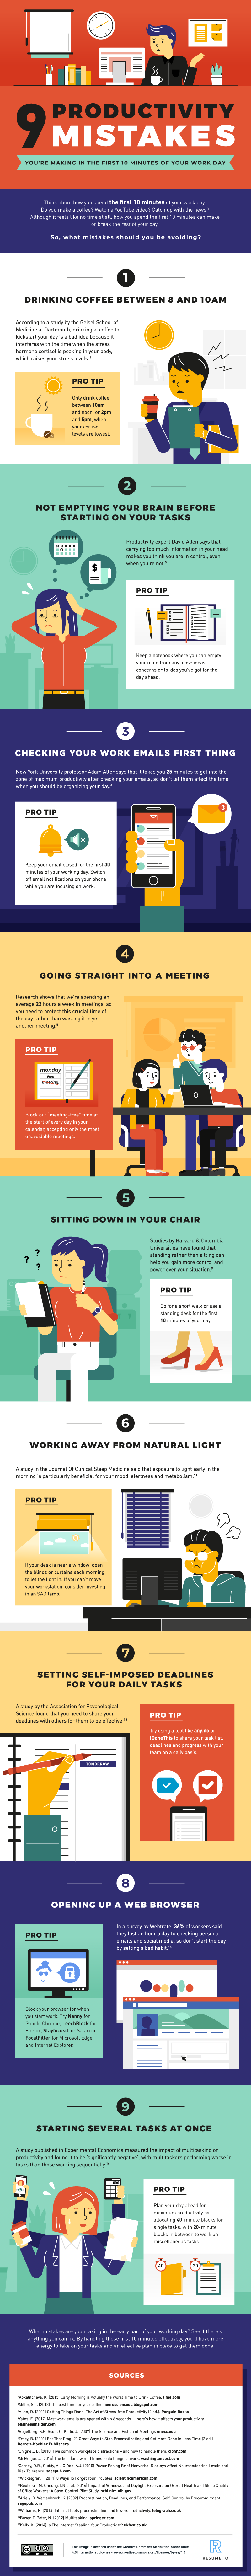 Productivity Mistakes You are Making in the First 10 Minutes of Your Day #Infographic